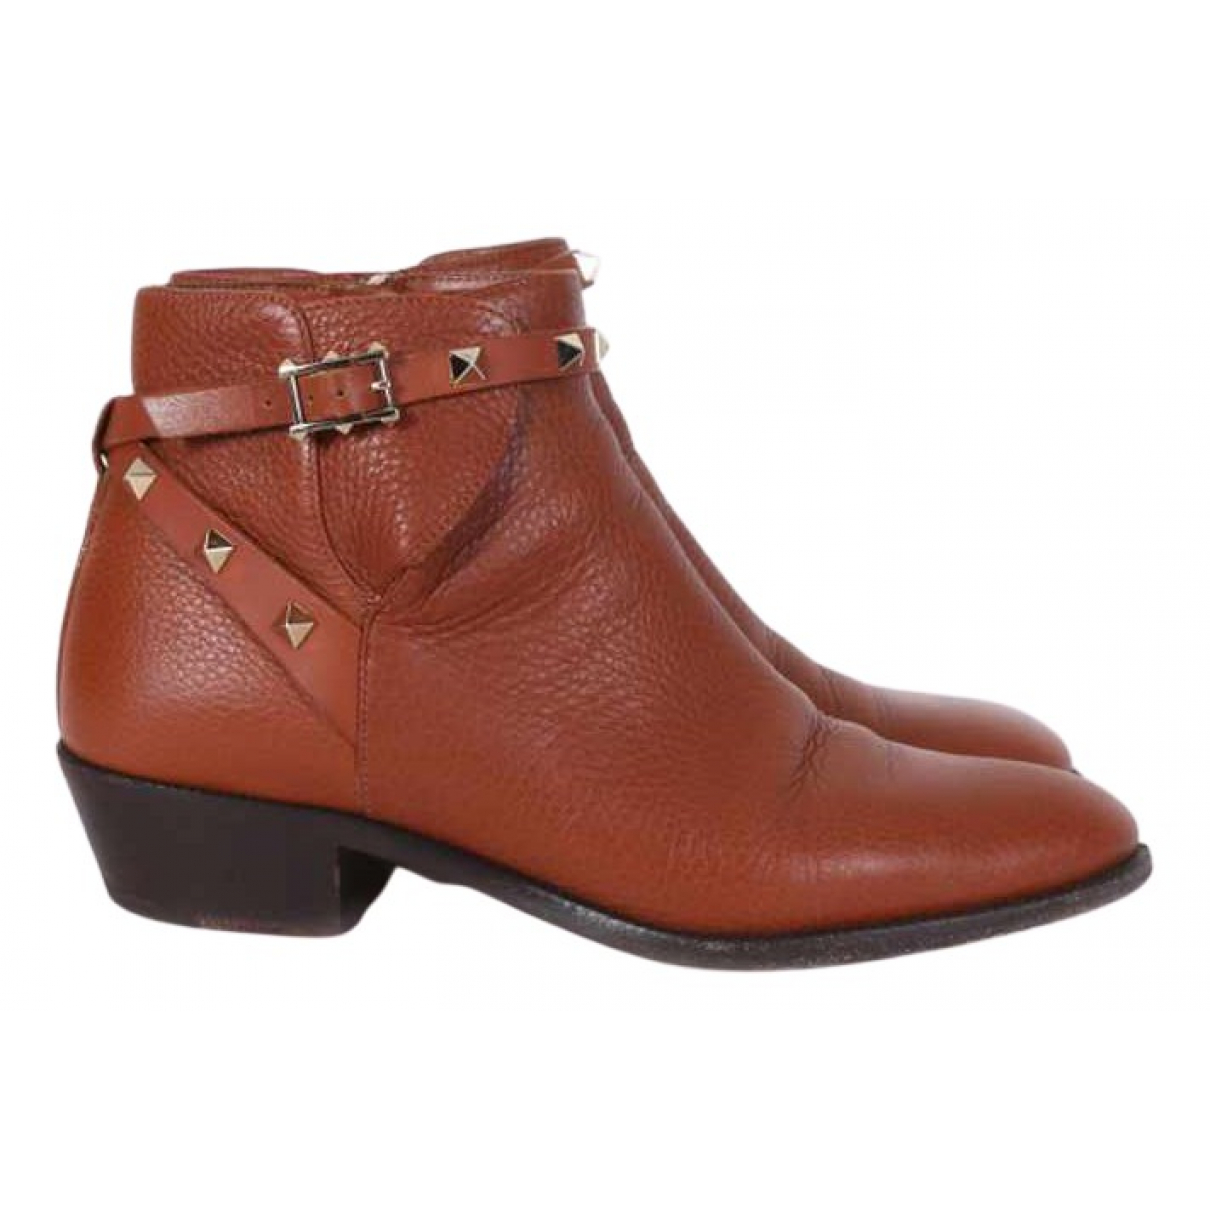 Valentino Garavani Rockstud Brown Leather Ankle boots for Women 39 EU